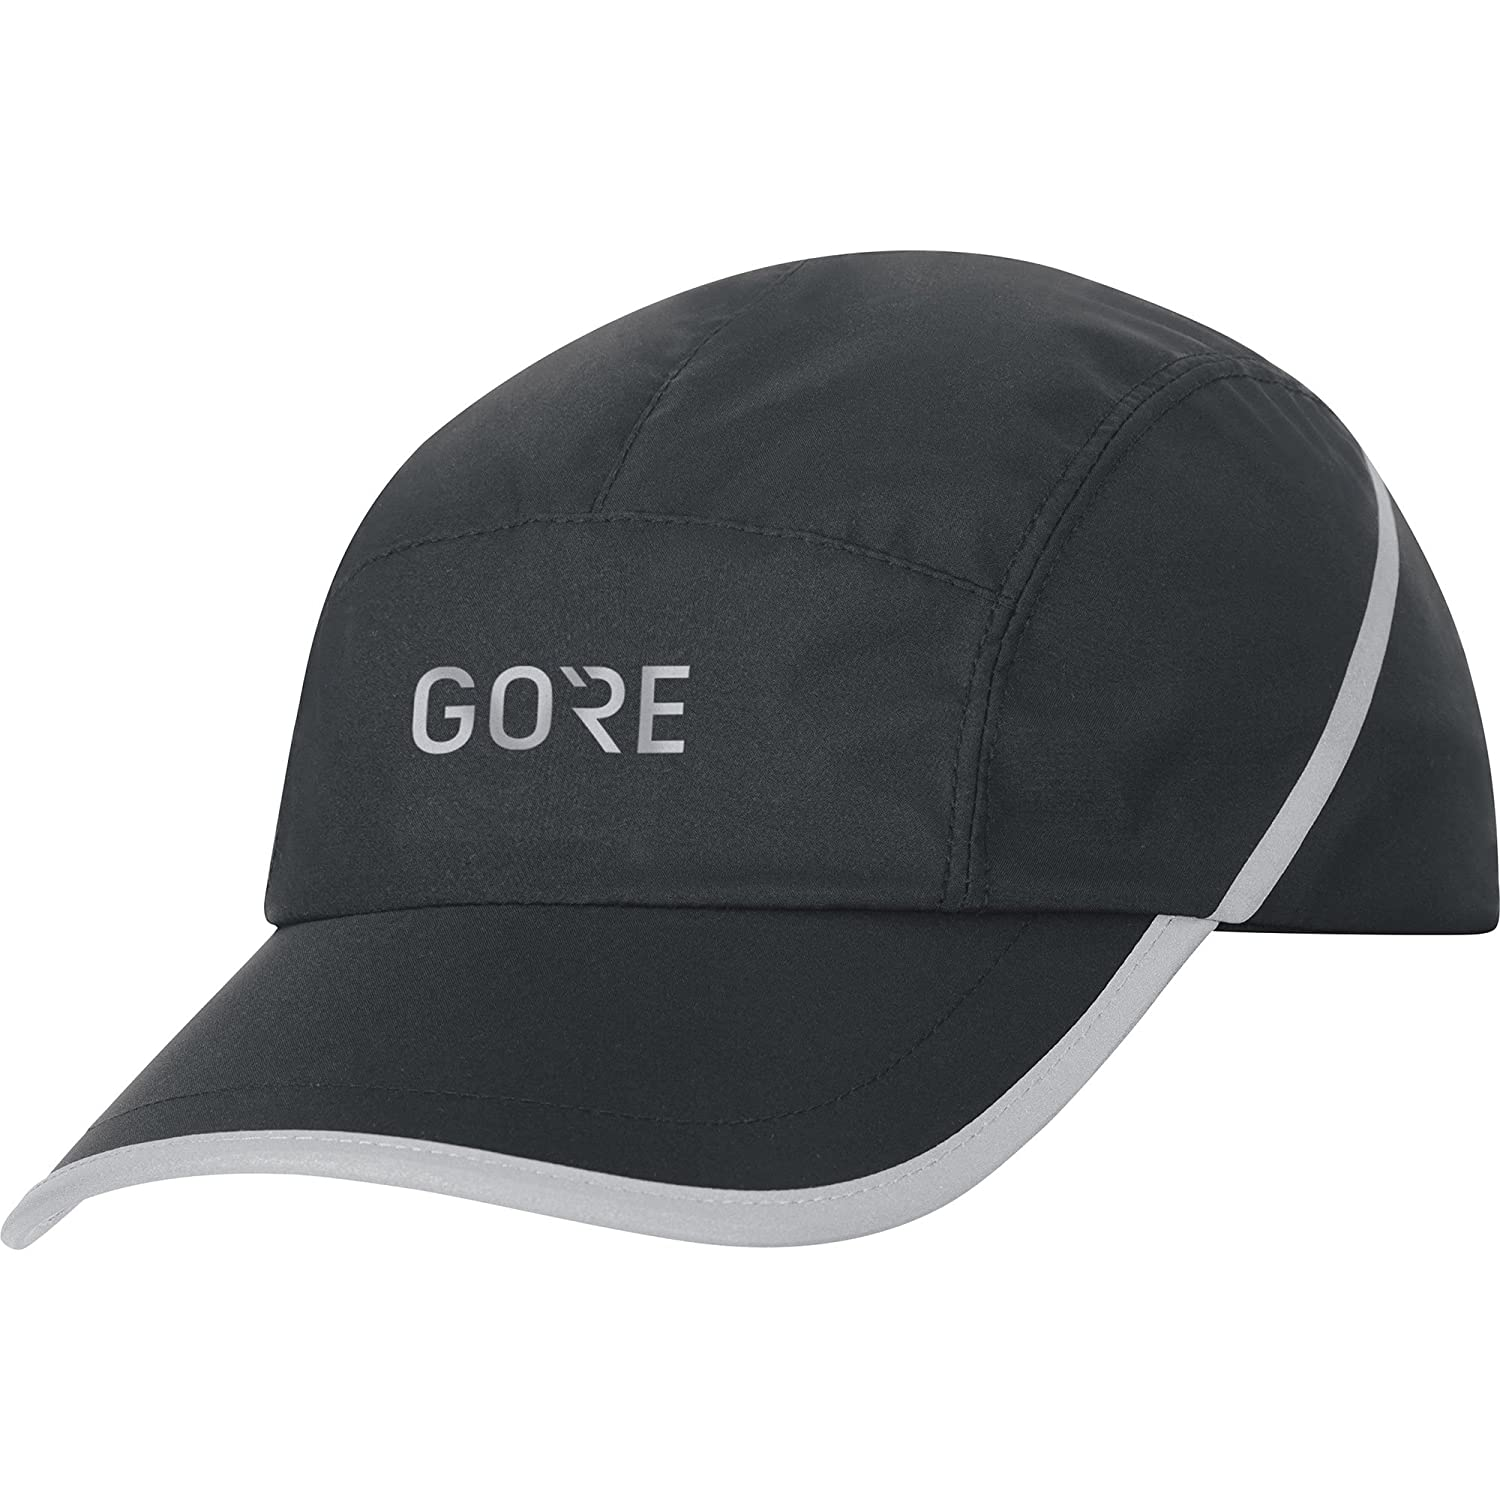 Gore Wear 100341, Cappellino Unisex – Adulto, Black, One Cappellino Unisex - Adulto